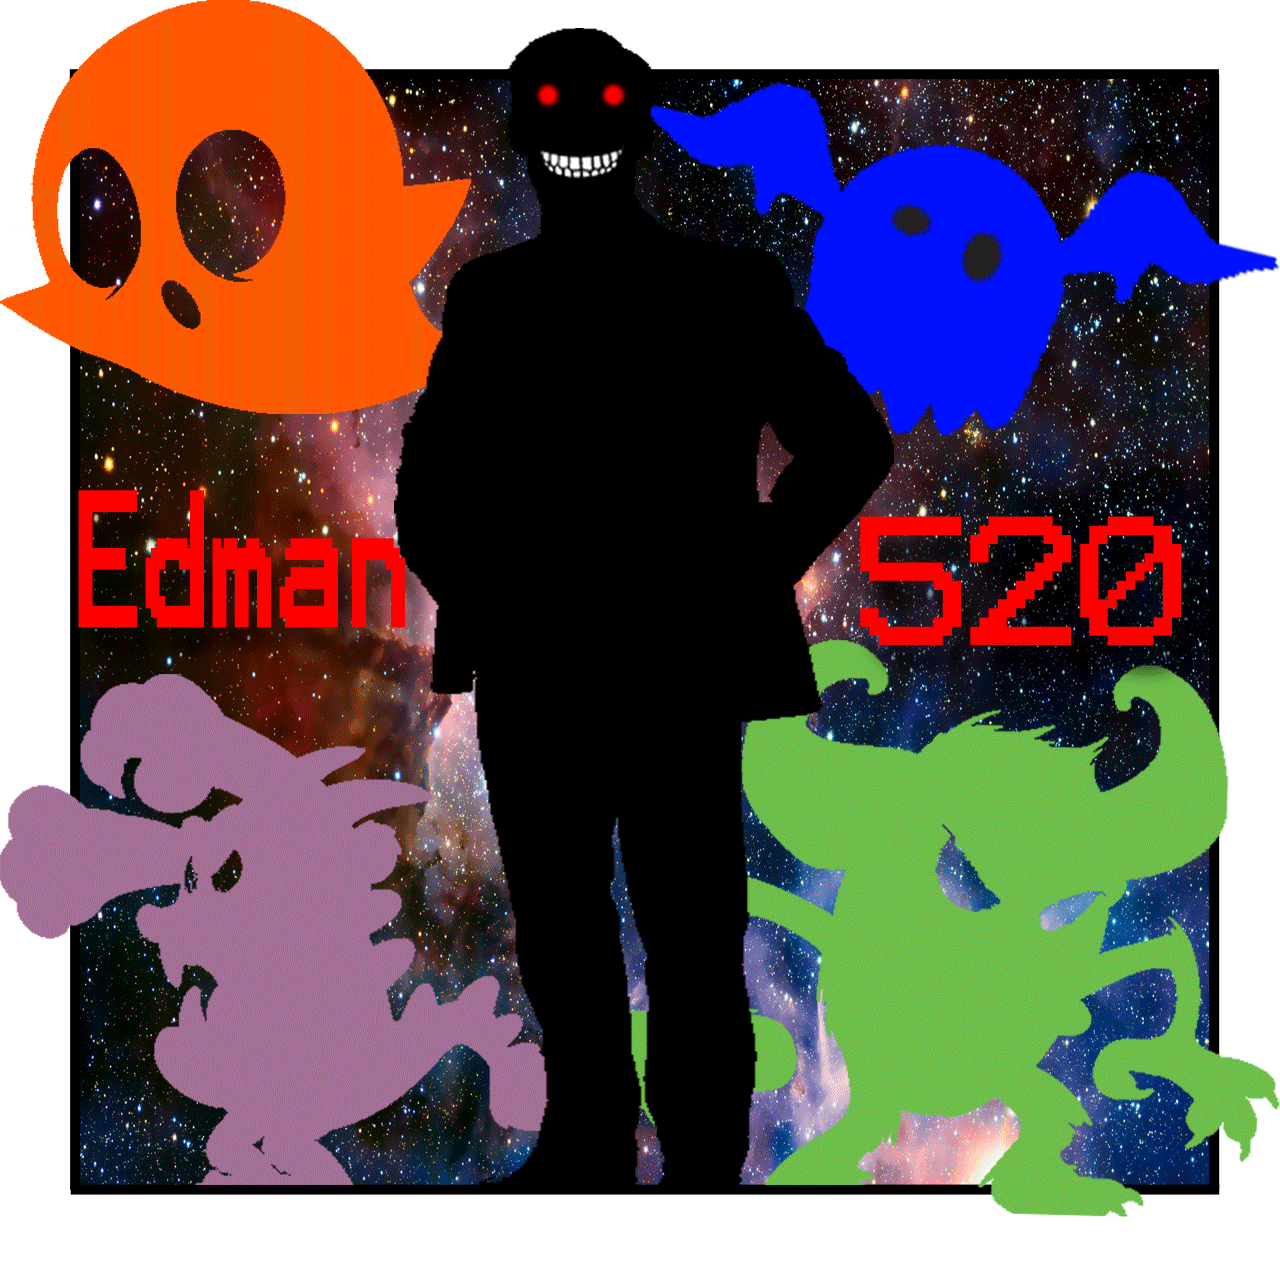 Edman520 Logo (With words)